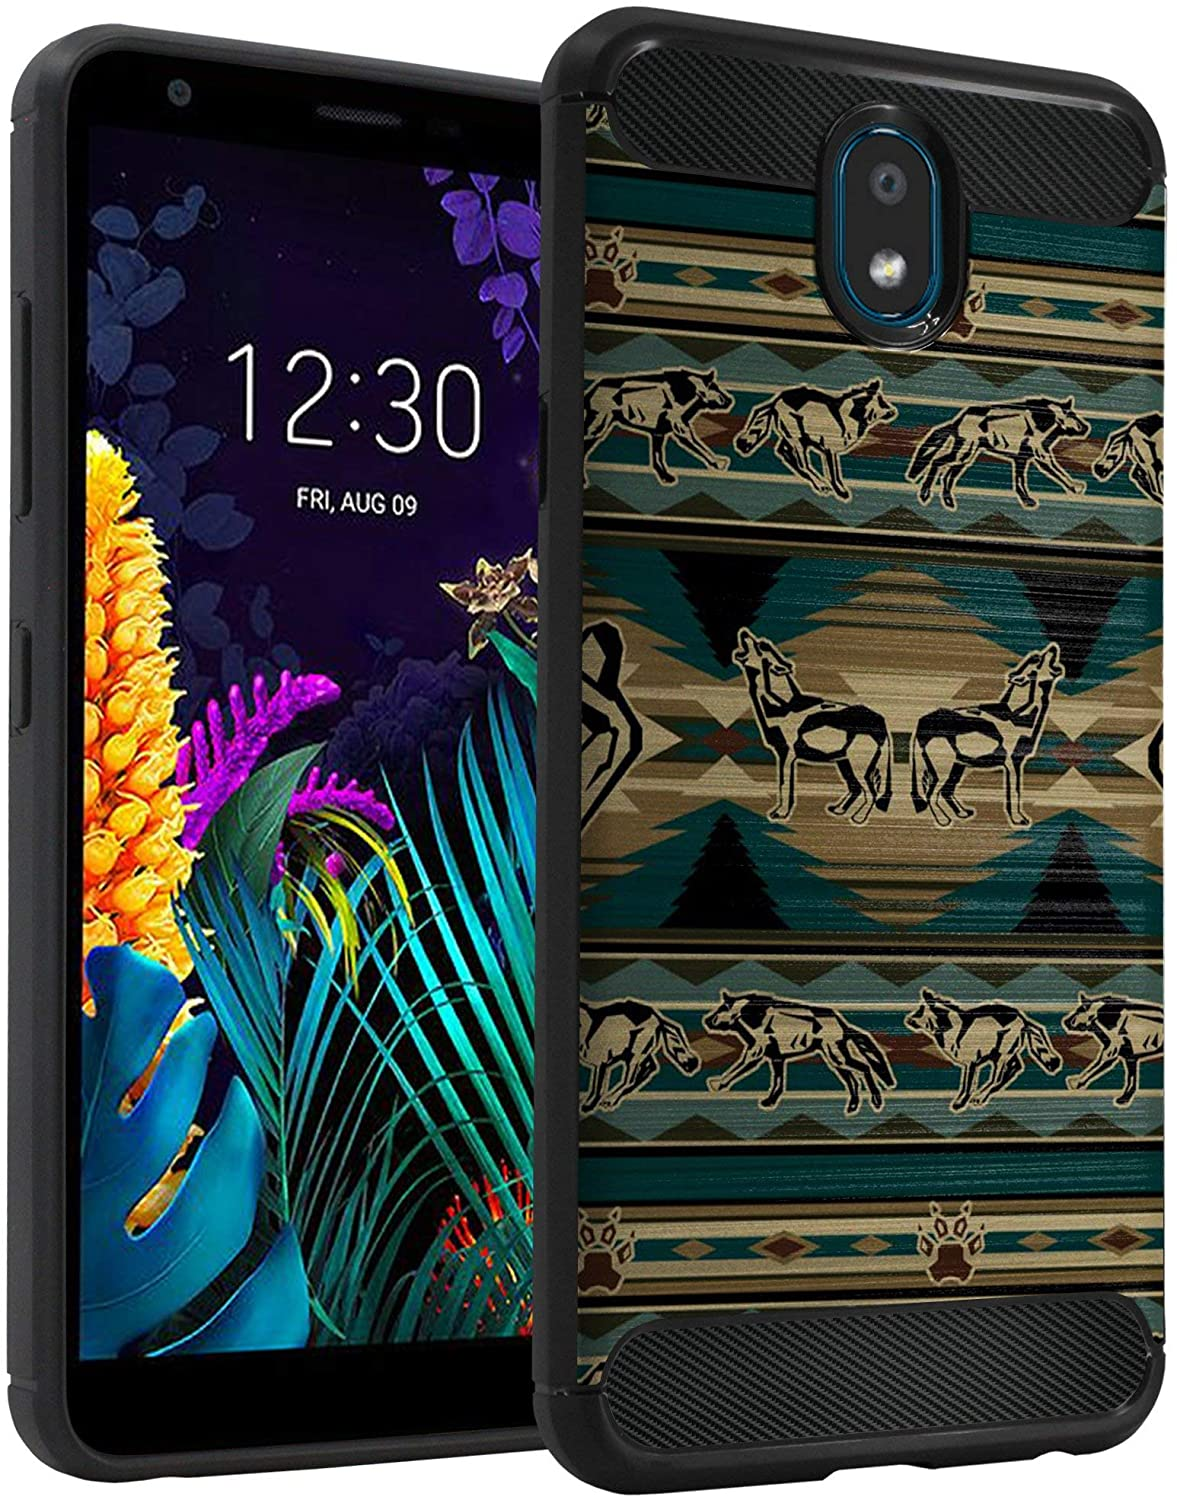 CasesOnDeck Case Compatible with [LG Aristo 4 / LG Aristo 4+ Plus/LG Prime 2/ Journey LTE] Design Case, Slim Black Flexible Sleek Shock Protection TPU Case (Green Wolf Tribal)